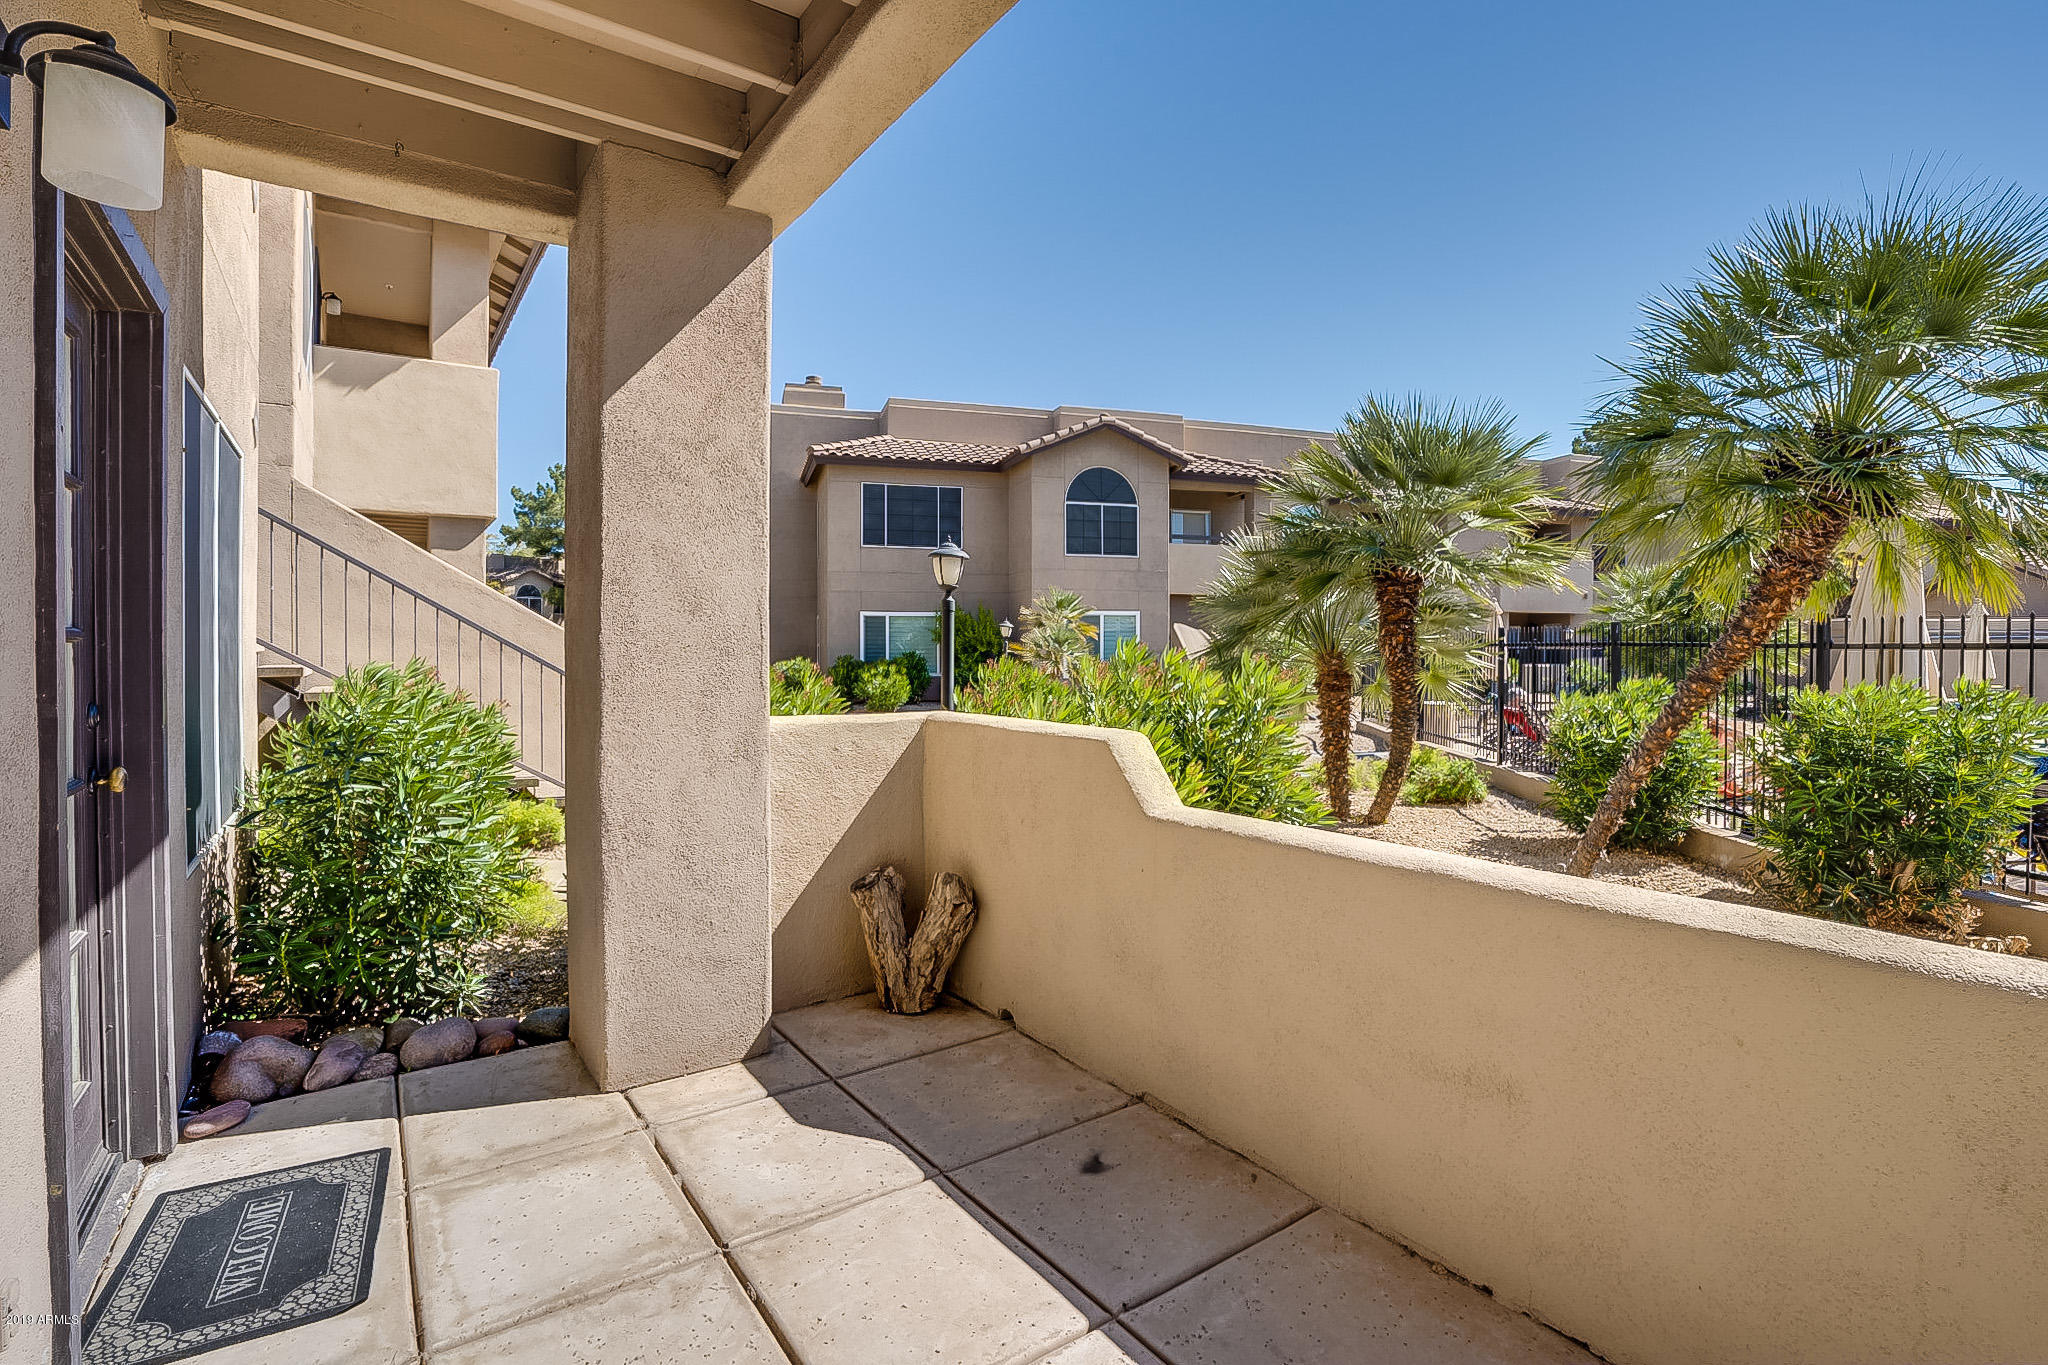 MLS 5892072 9450 E BECKER Lane Unit 1011 Building 1011, Scottsdale, AZ 85260 Scottsdale AZ Scottsdale Airpark Area